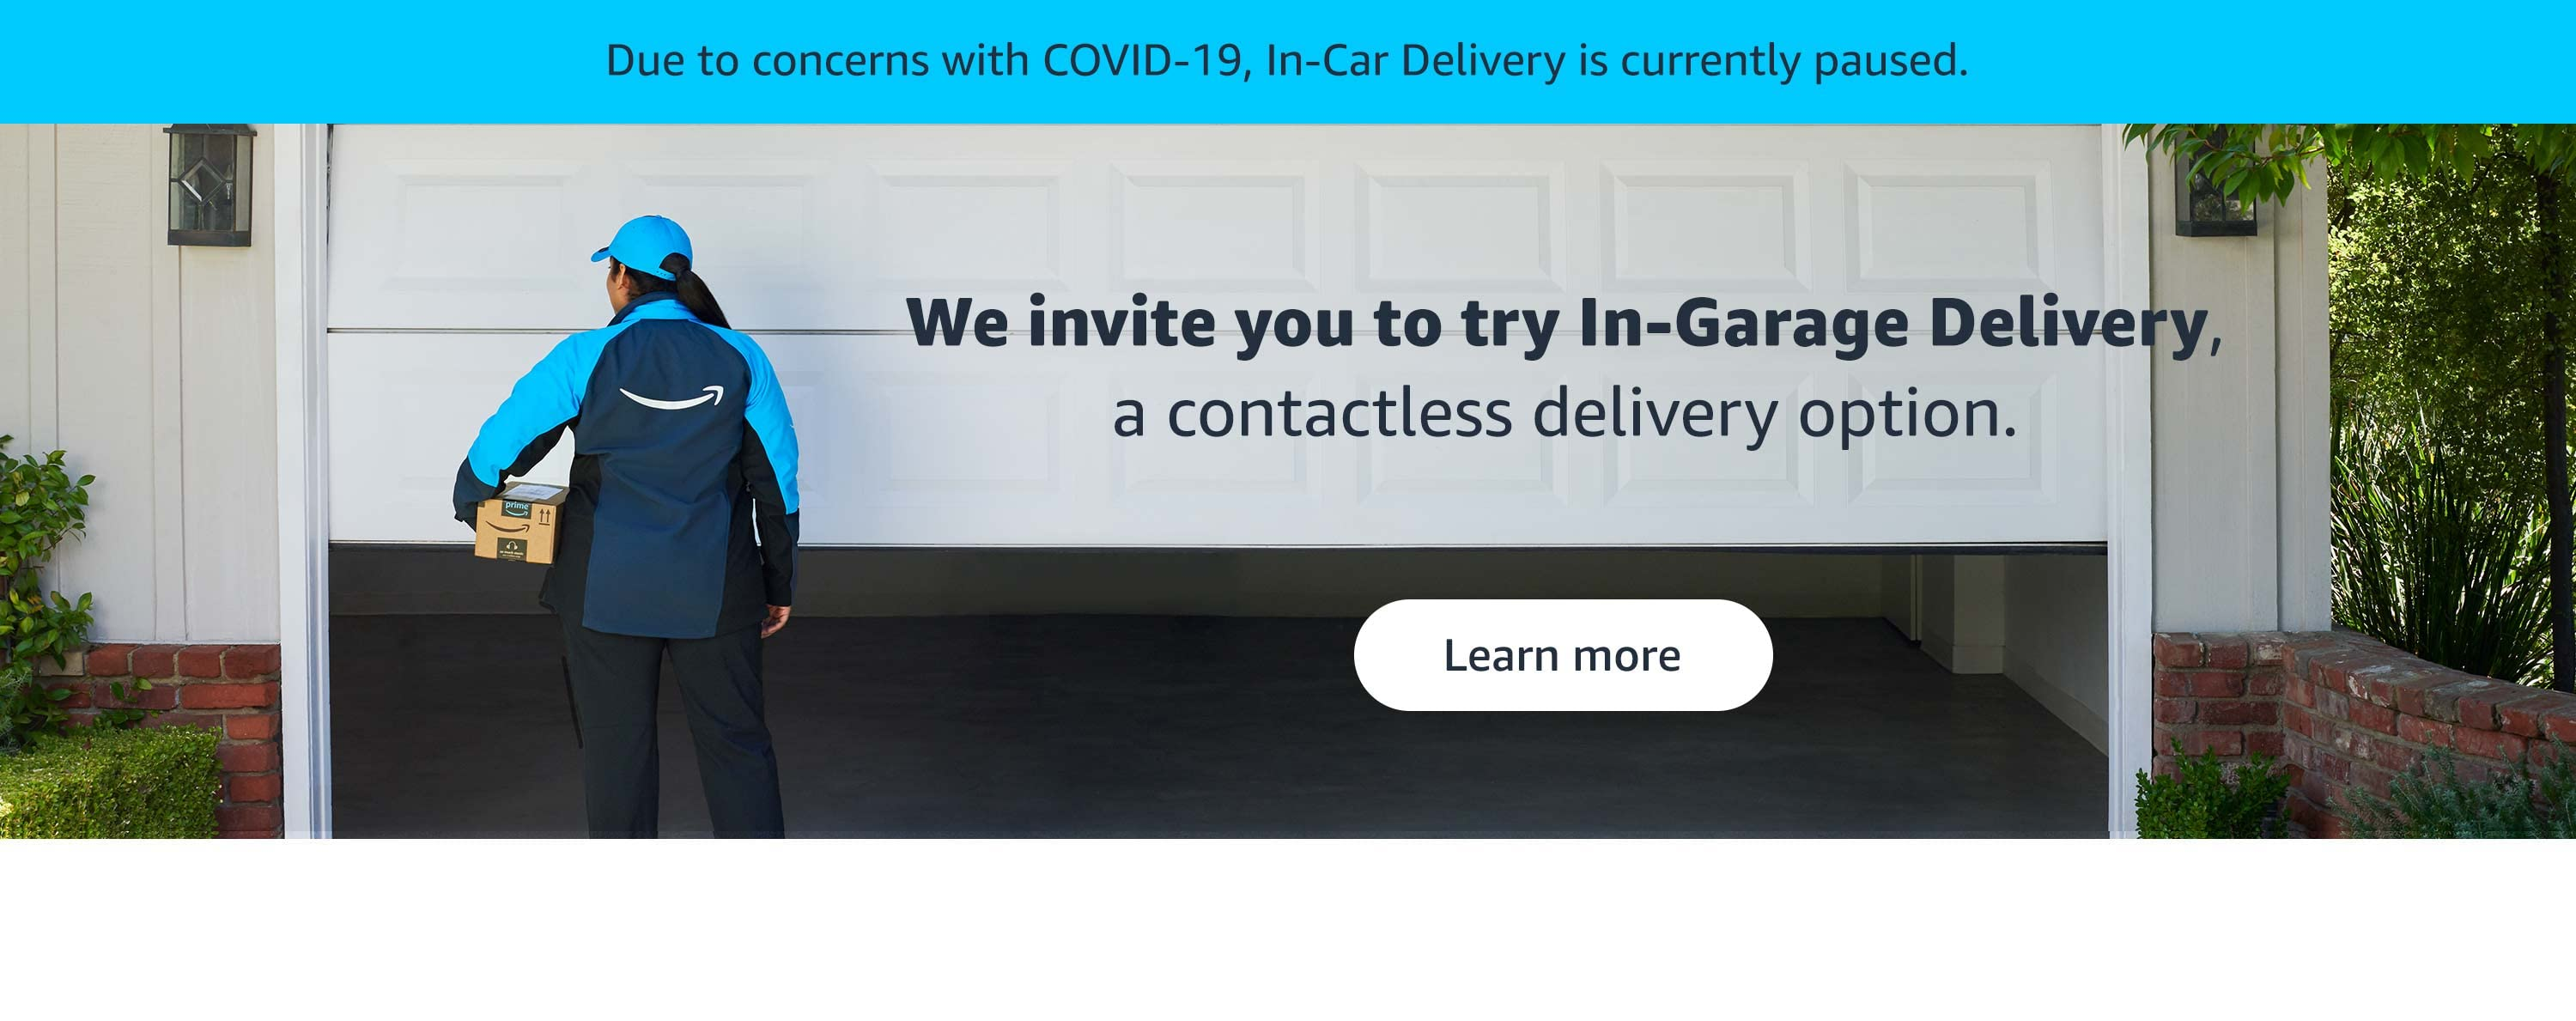 In-Car Delivery is currently paused due to Covid-19. We invite you to try In-Garage Delivery, a contactless delivery option.